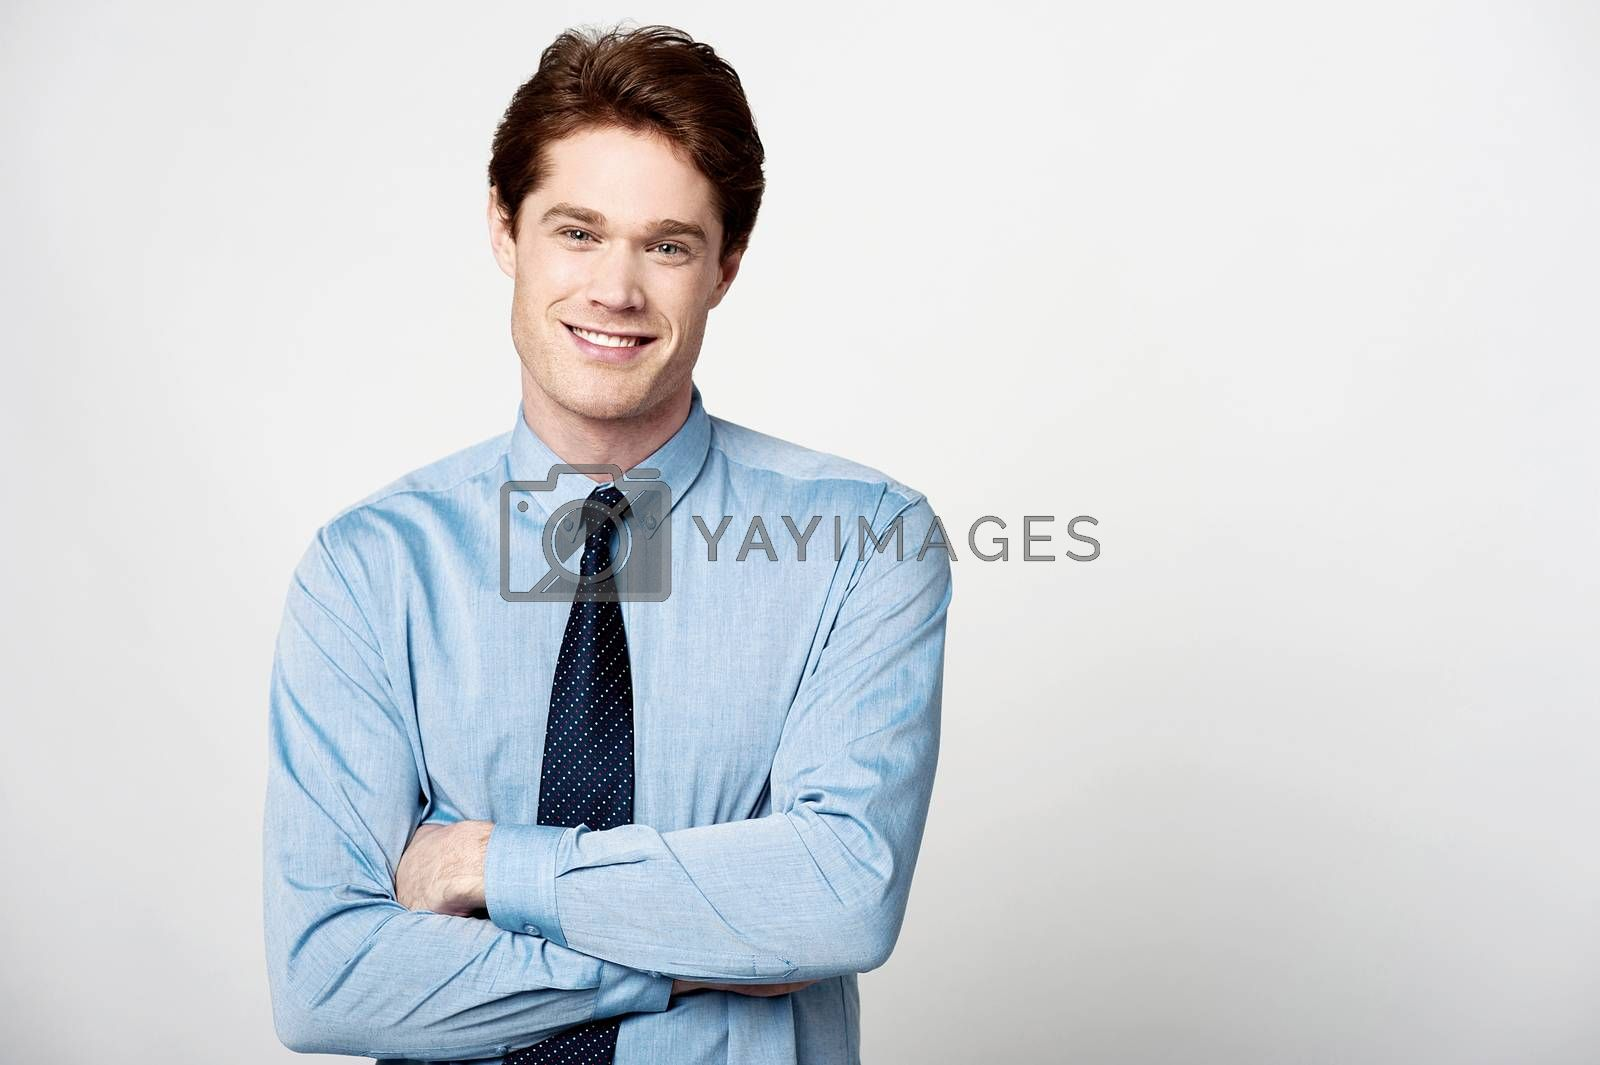 Royalty free image of Smiling businessman with folded arms by stockyimages